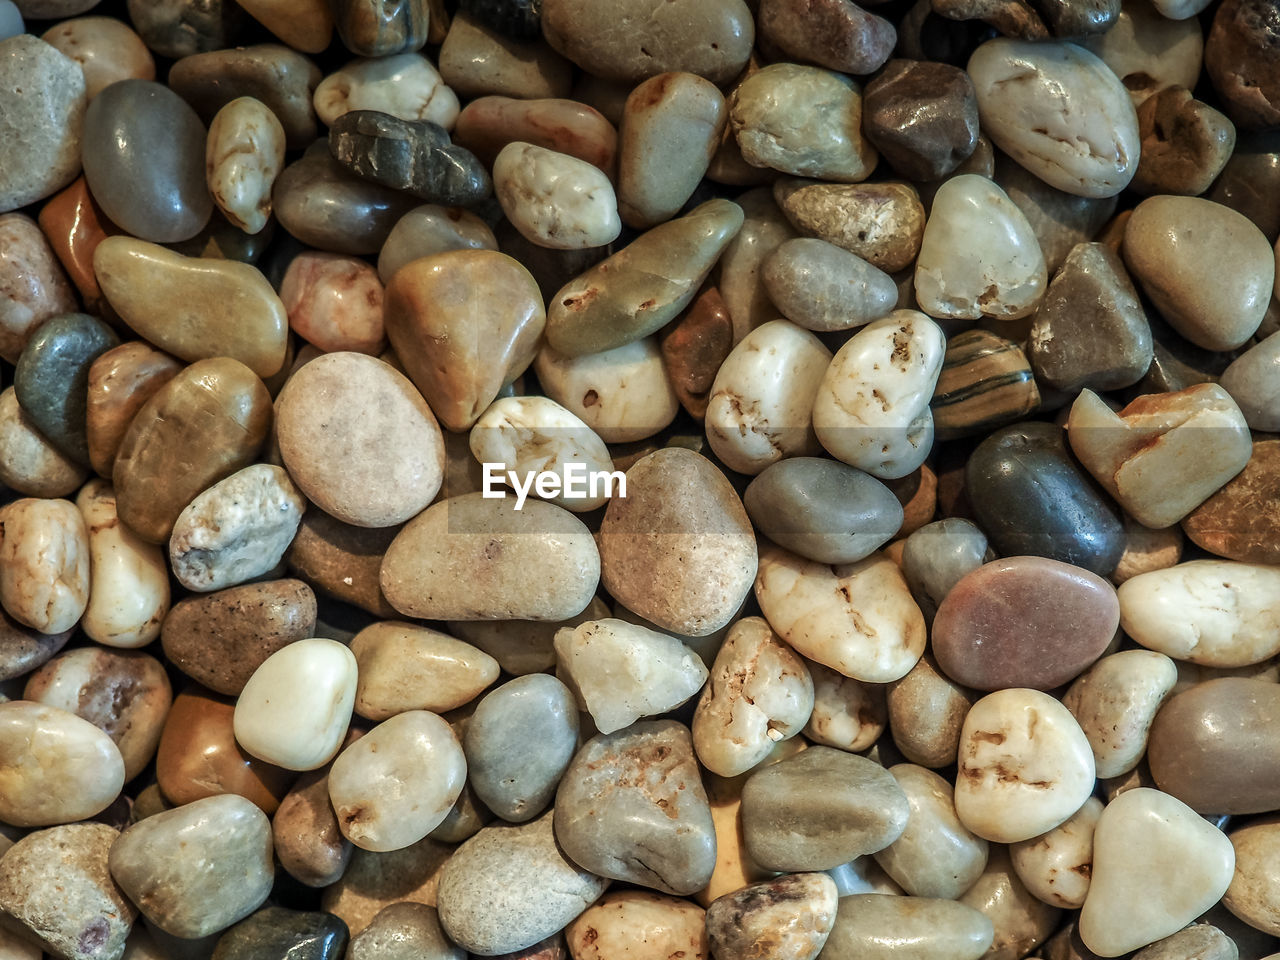 pebble, beach, full frame, backgrounds, nature, large group of objects, pebble beach, no people, abundance, outdoors, close-up, day, beauty in nature